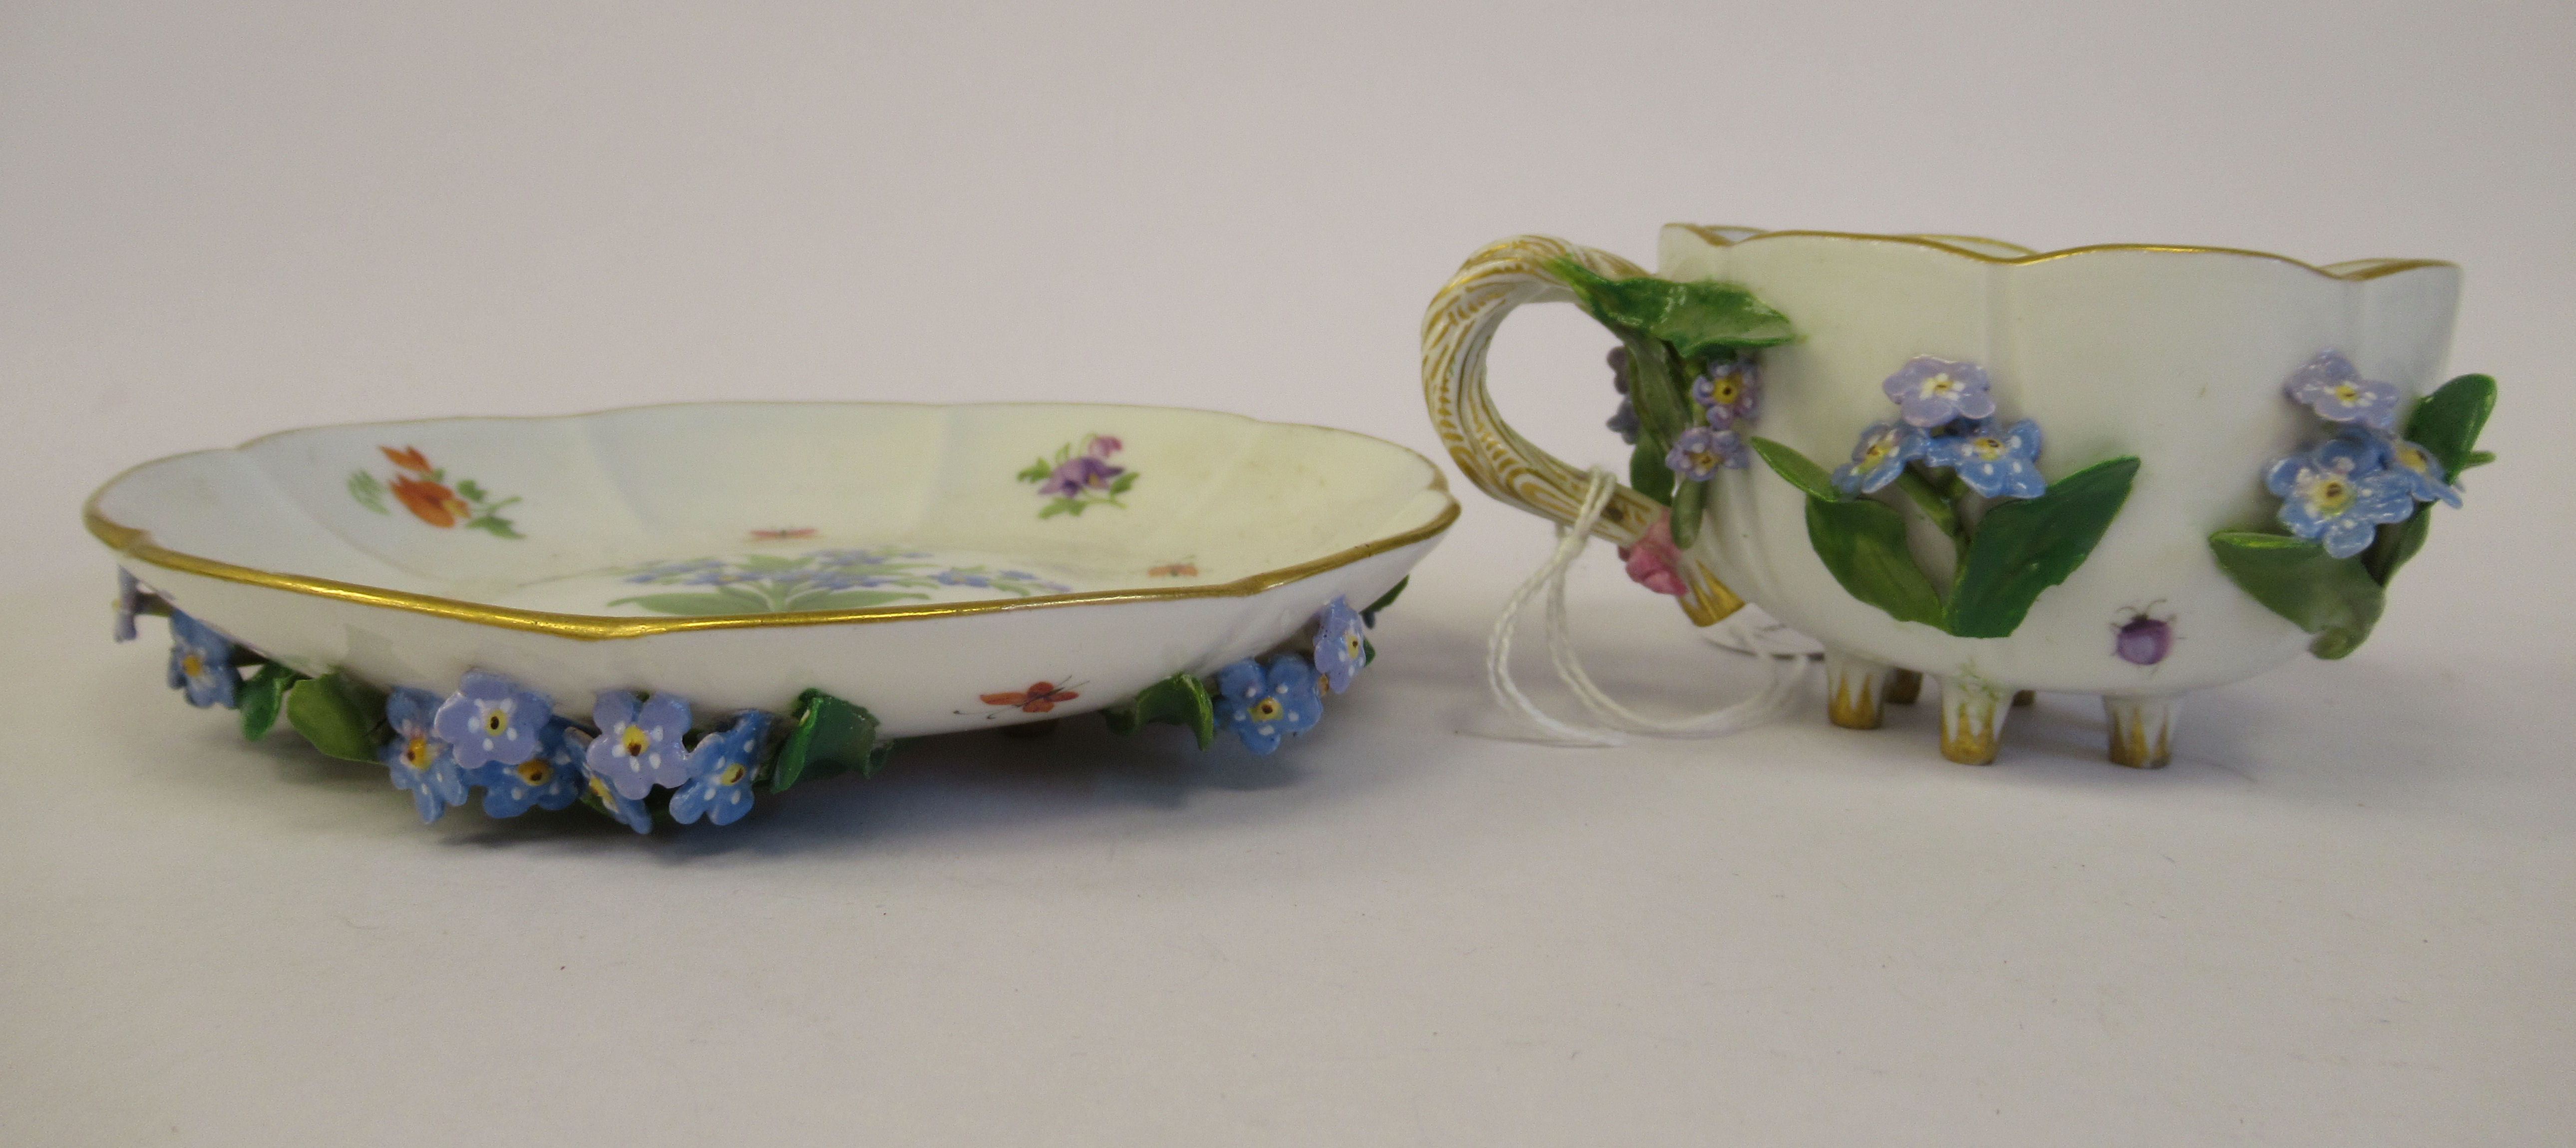 A 19thC Meissen porcelain cup and saucer, having an entwined twig handle, decorated with encrusted - Image 5 of 10